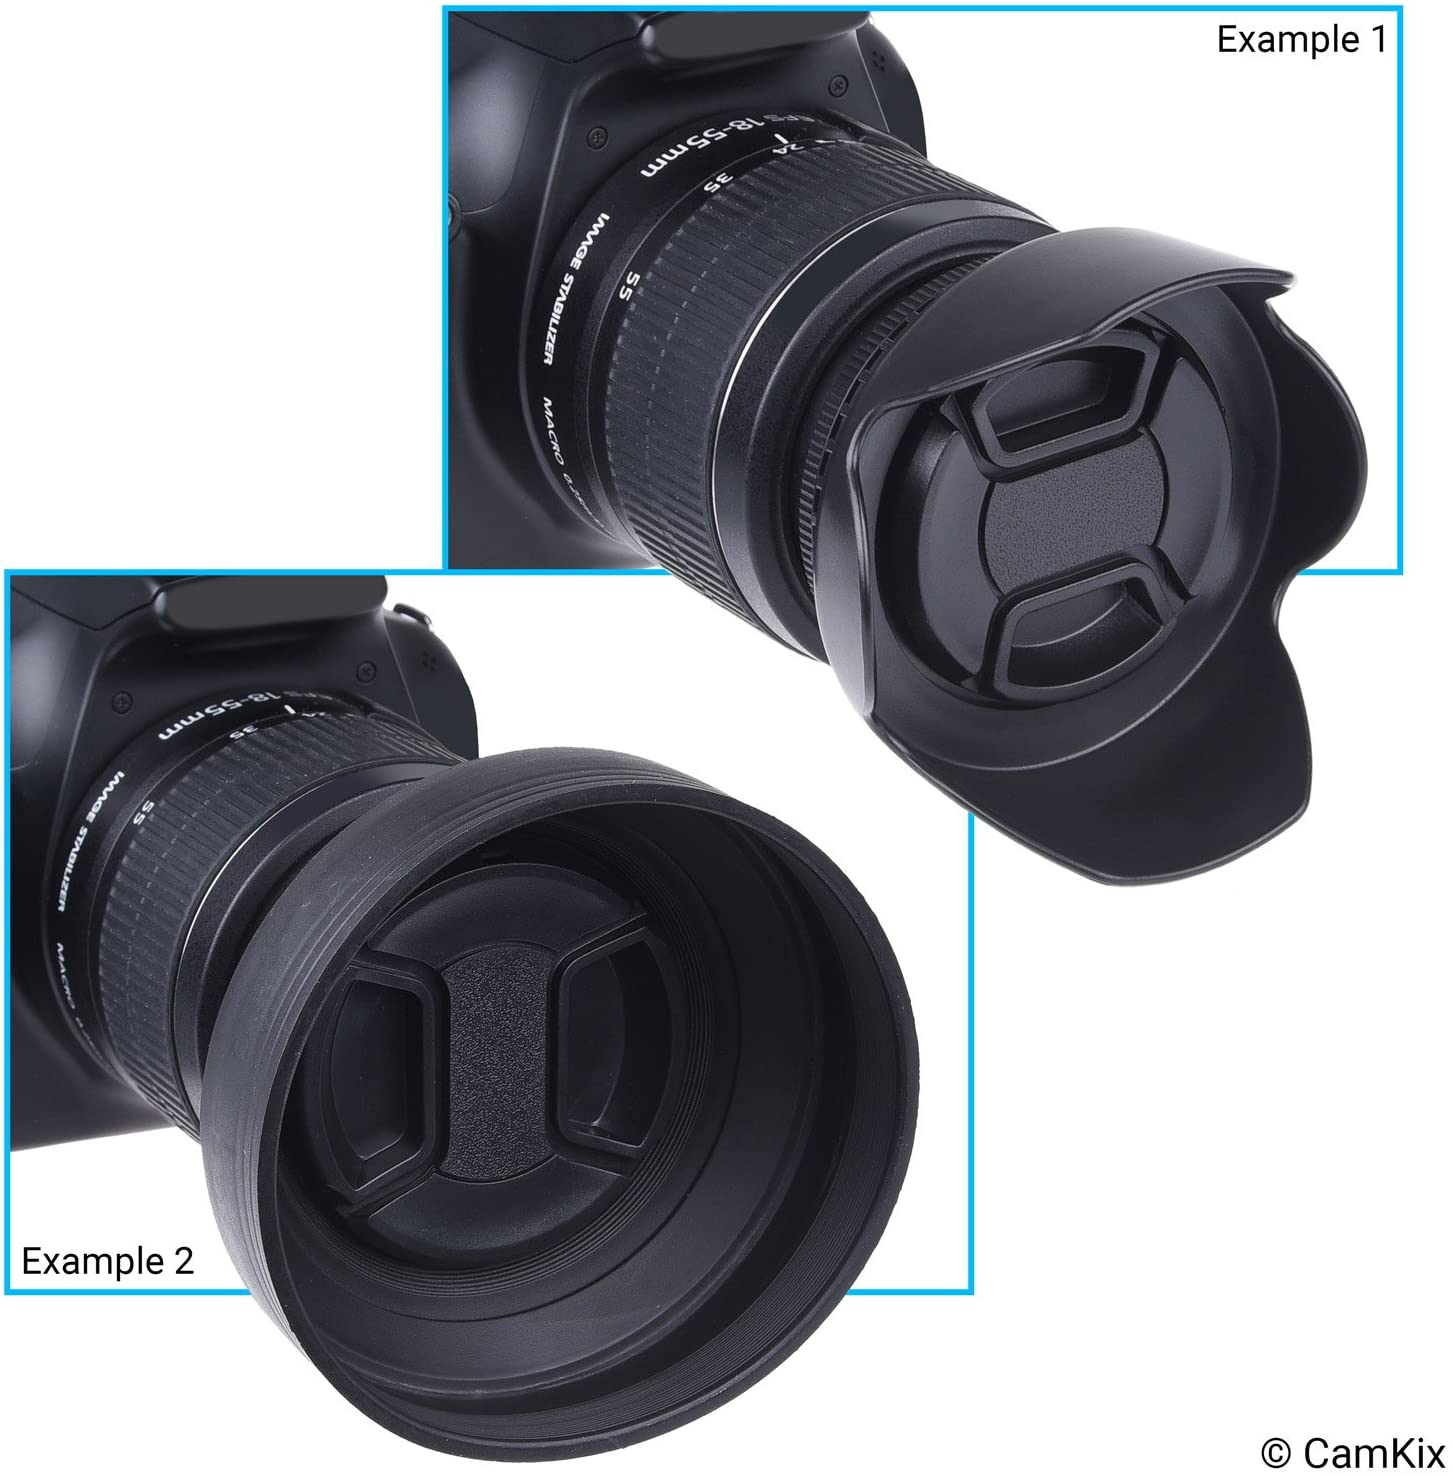 Reduces Lens Flare and Glare Rubber Blocks Excess Sunlight for Enhanced Photography and Video Footage + Tulip Flower Collapsible Sun Shade // Shield 72mm Set of 2 Camera Lens Hoods and 1 Lens Cap